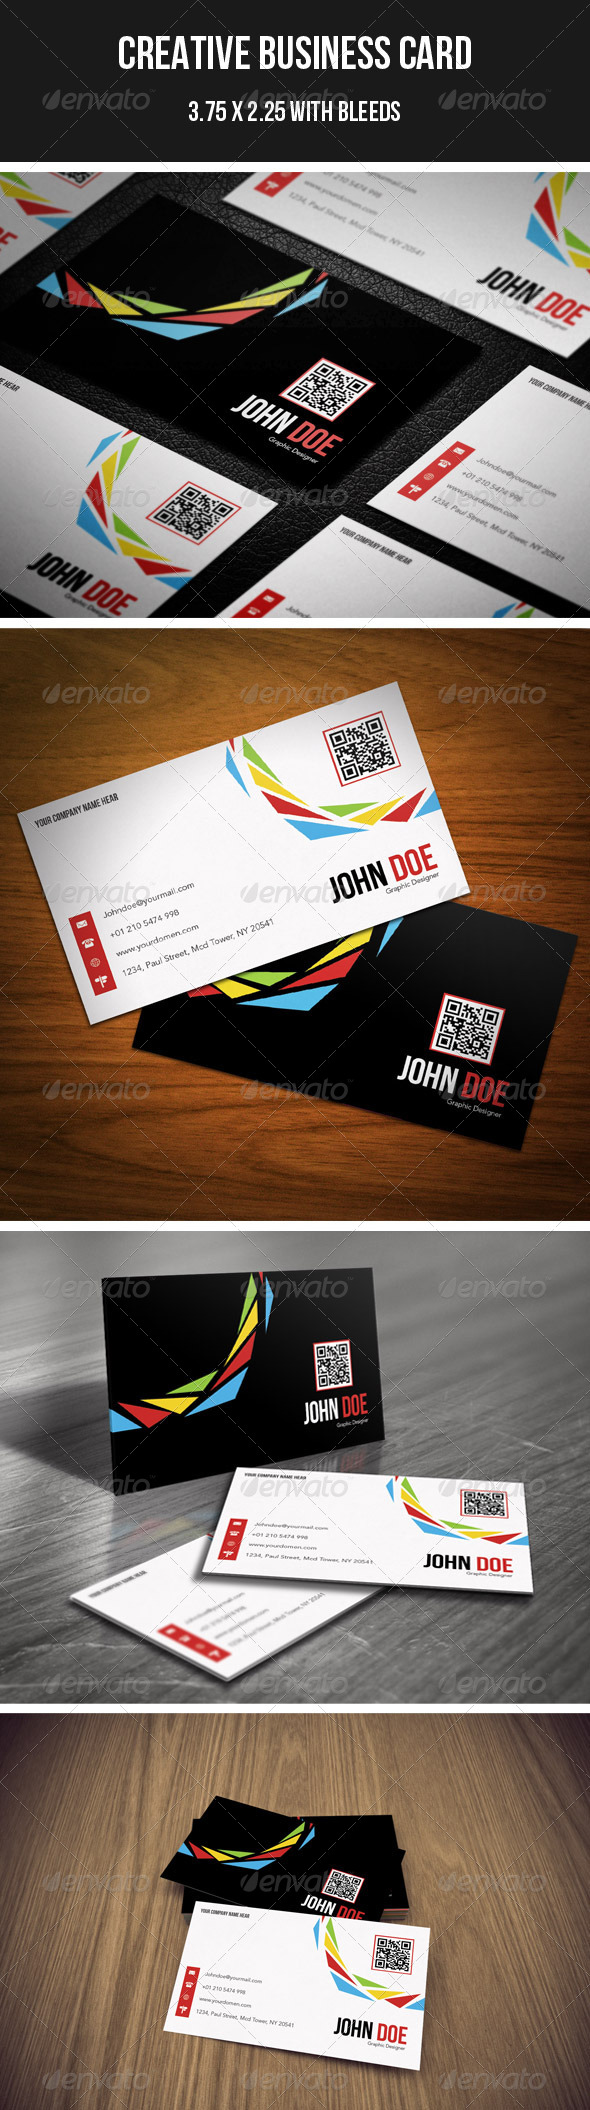 GraphicRiver Creative Business Card 11 4313450